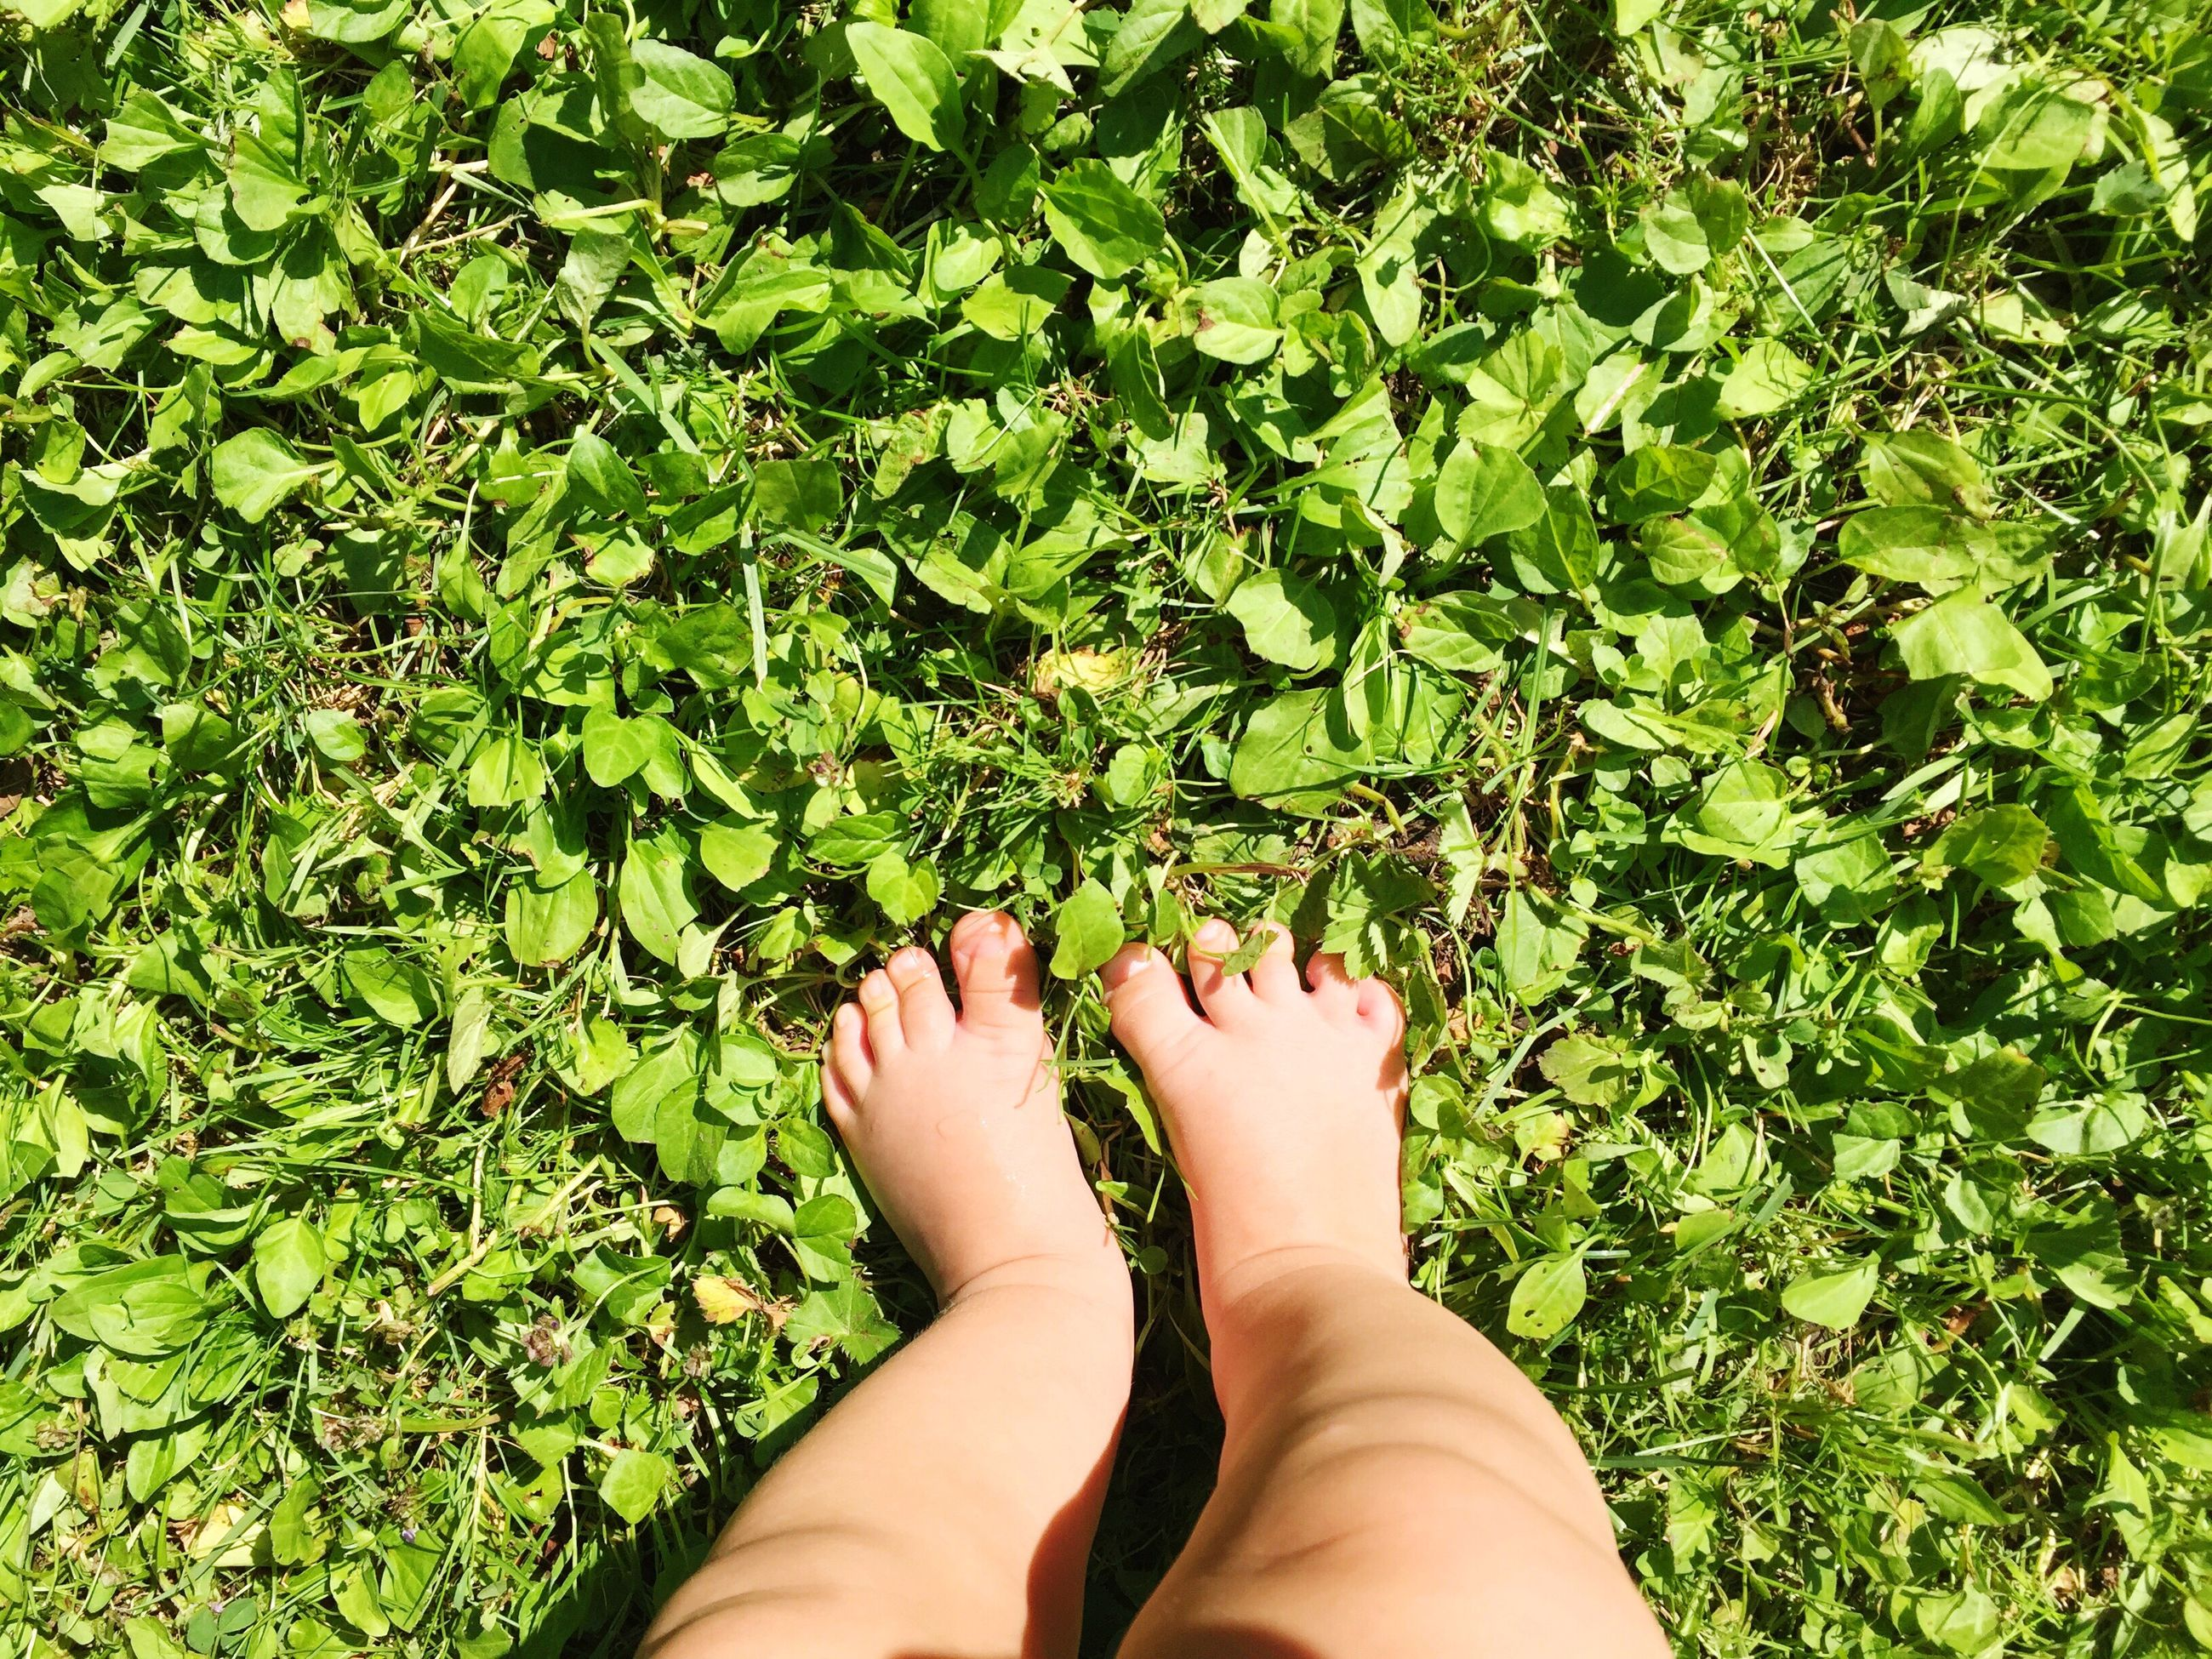 low section, personal perspective, person, green color, grass, human foot, barefoot, part of, lifestyles, growth, plant, leisure activity, unrecognizable person, nature, green, outdoors, day, grassy, cropped, lush foliage, close-up, beauty in nature